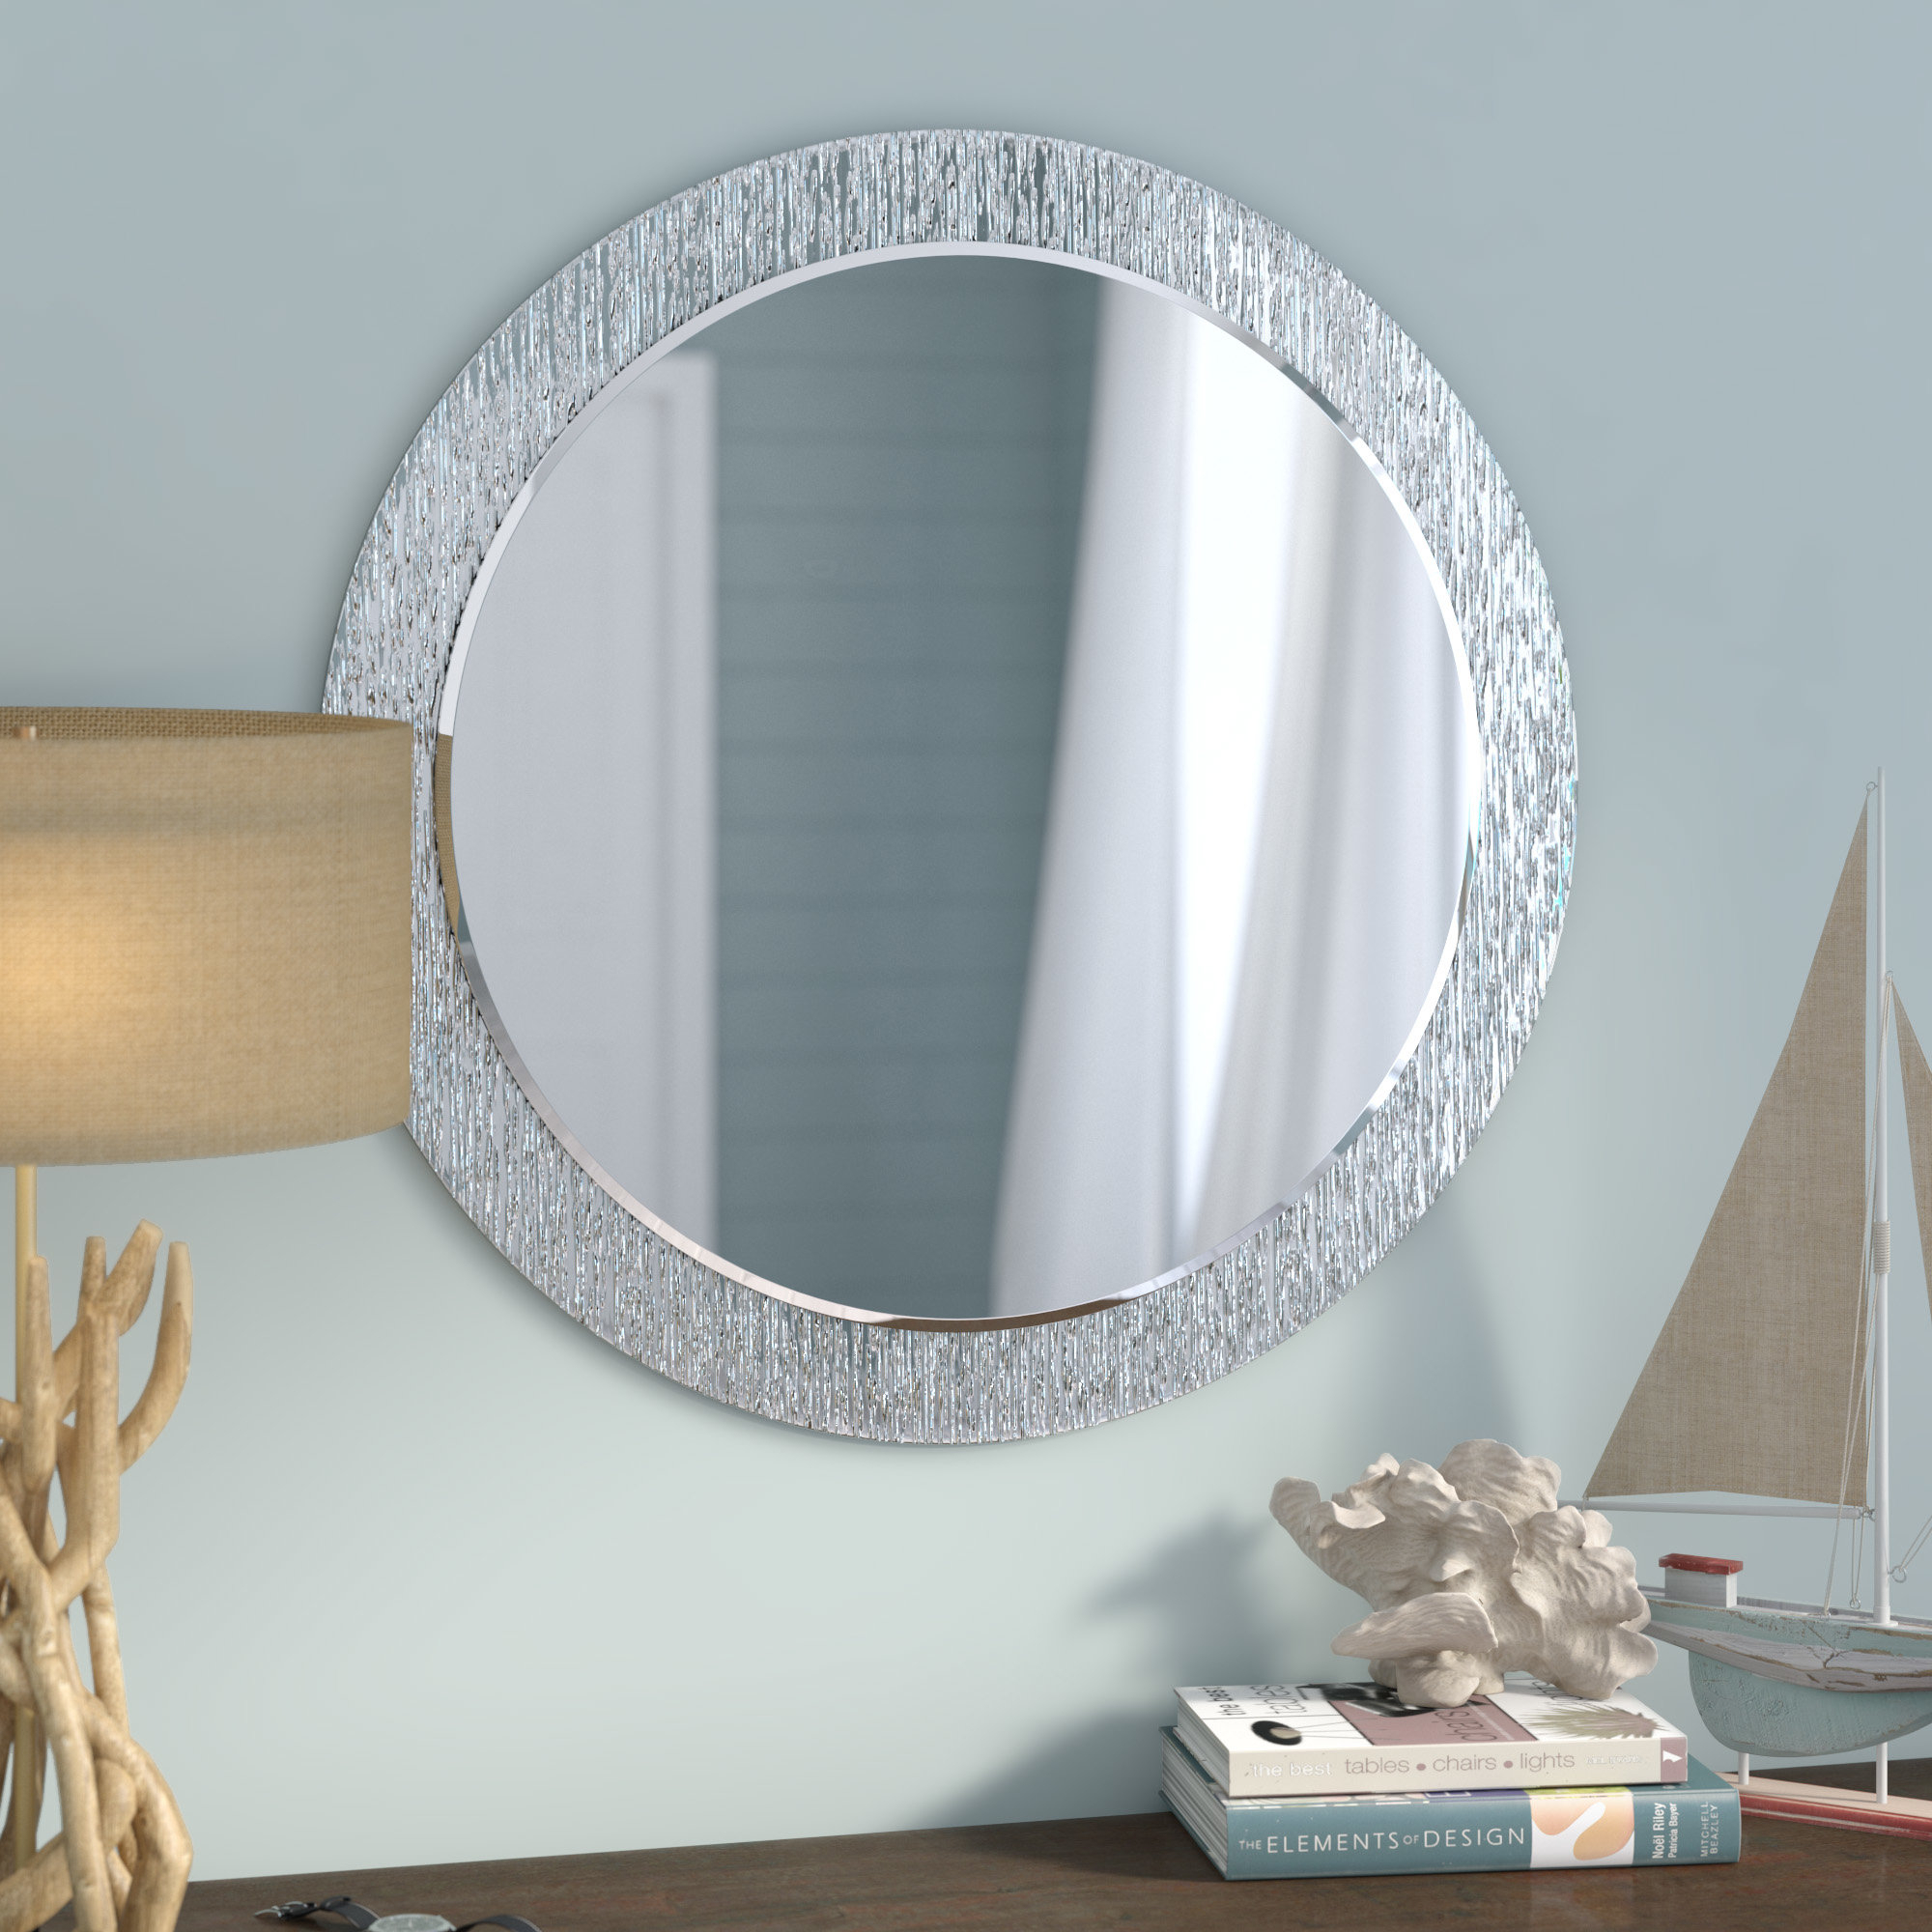 Point Reyes Molten Round Wall Mirror Intended For Round Eclectic Accent Mirrors (View 19 of 30)